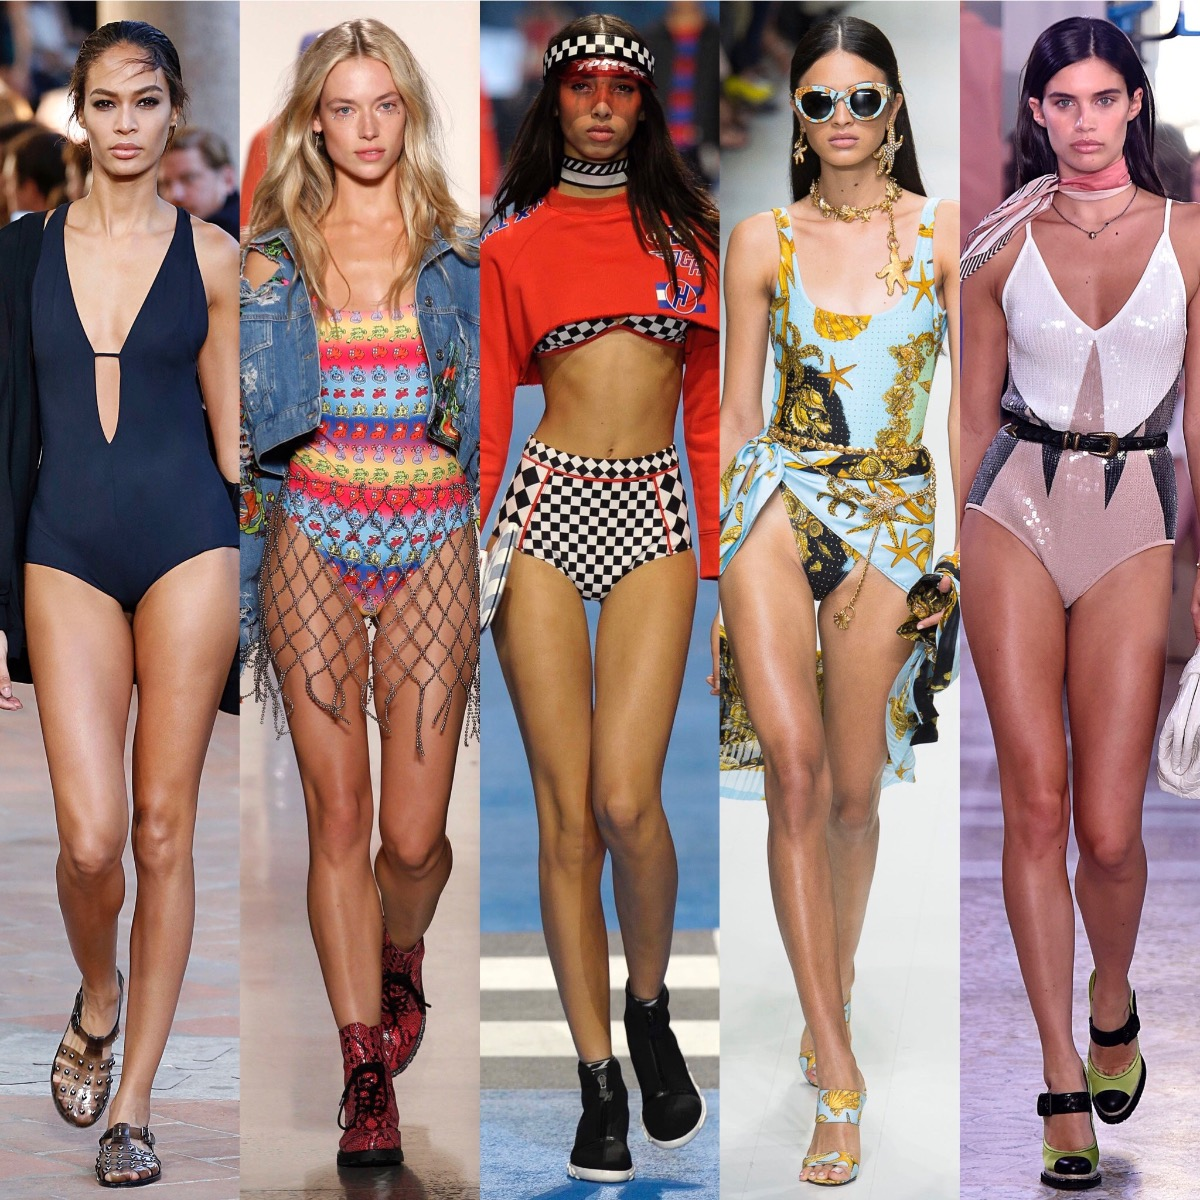 12 Swimsuit Trends To Try This Summer